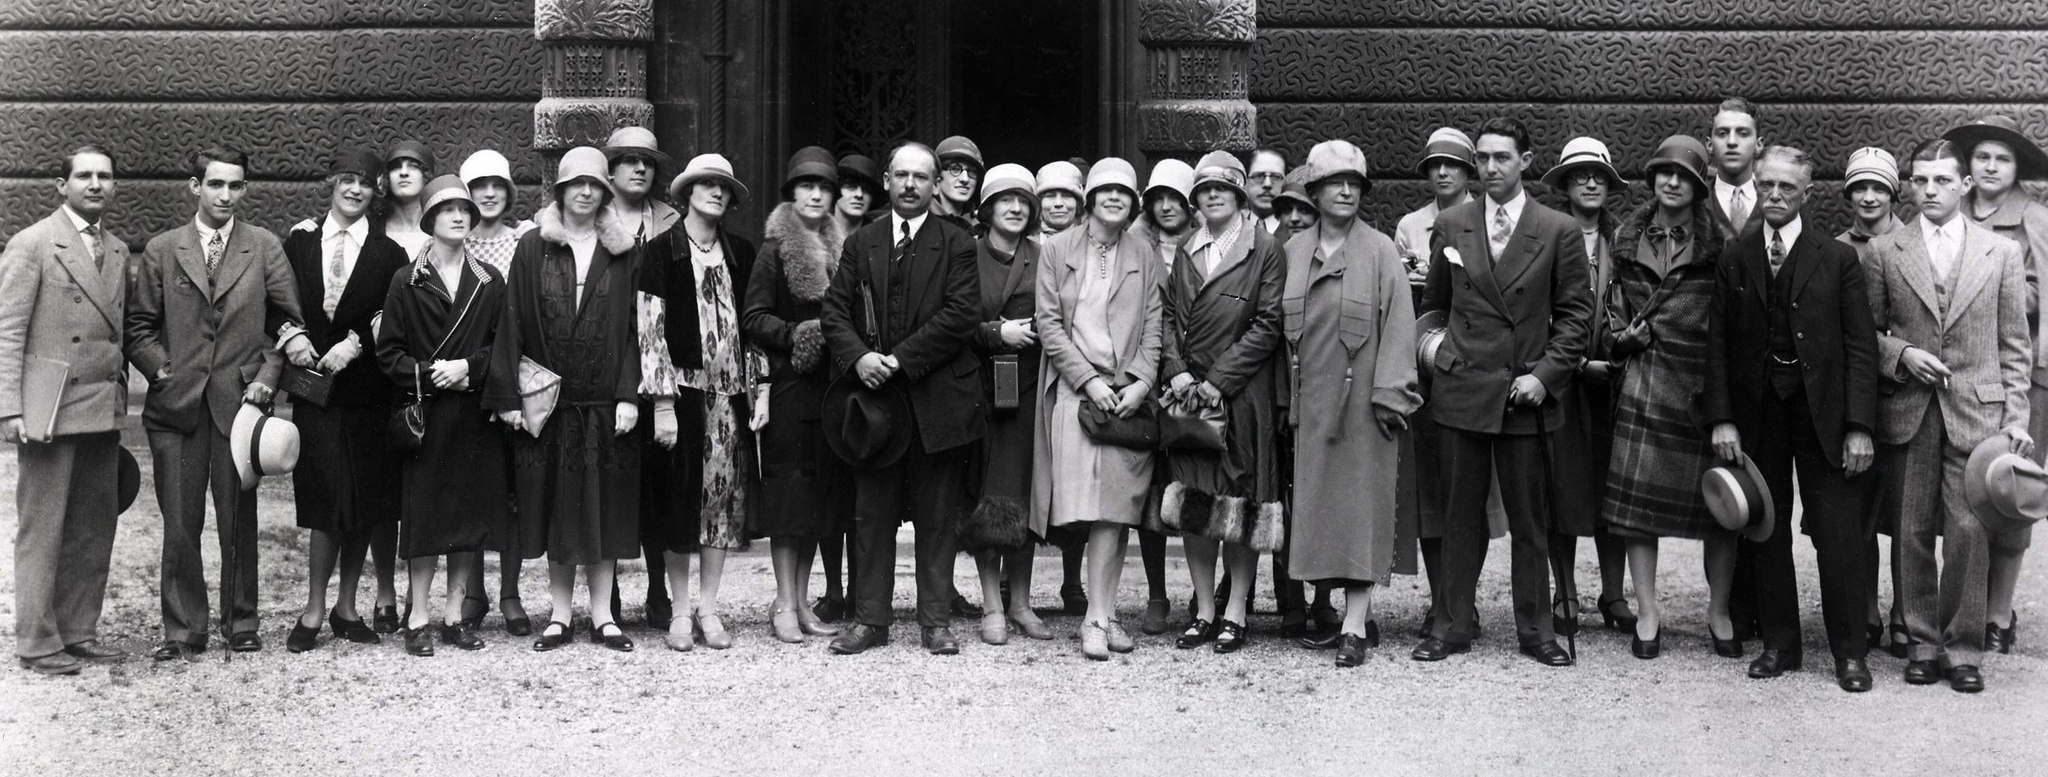 NYSID students on a study abroad trip to Paris, ca. 1930 (detail)